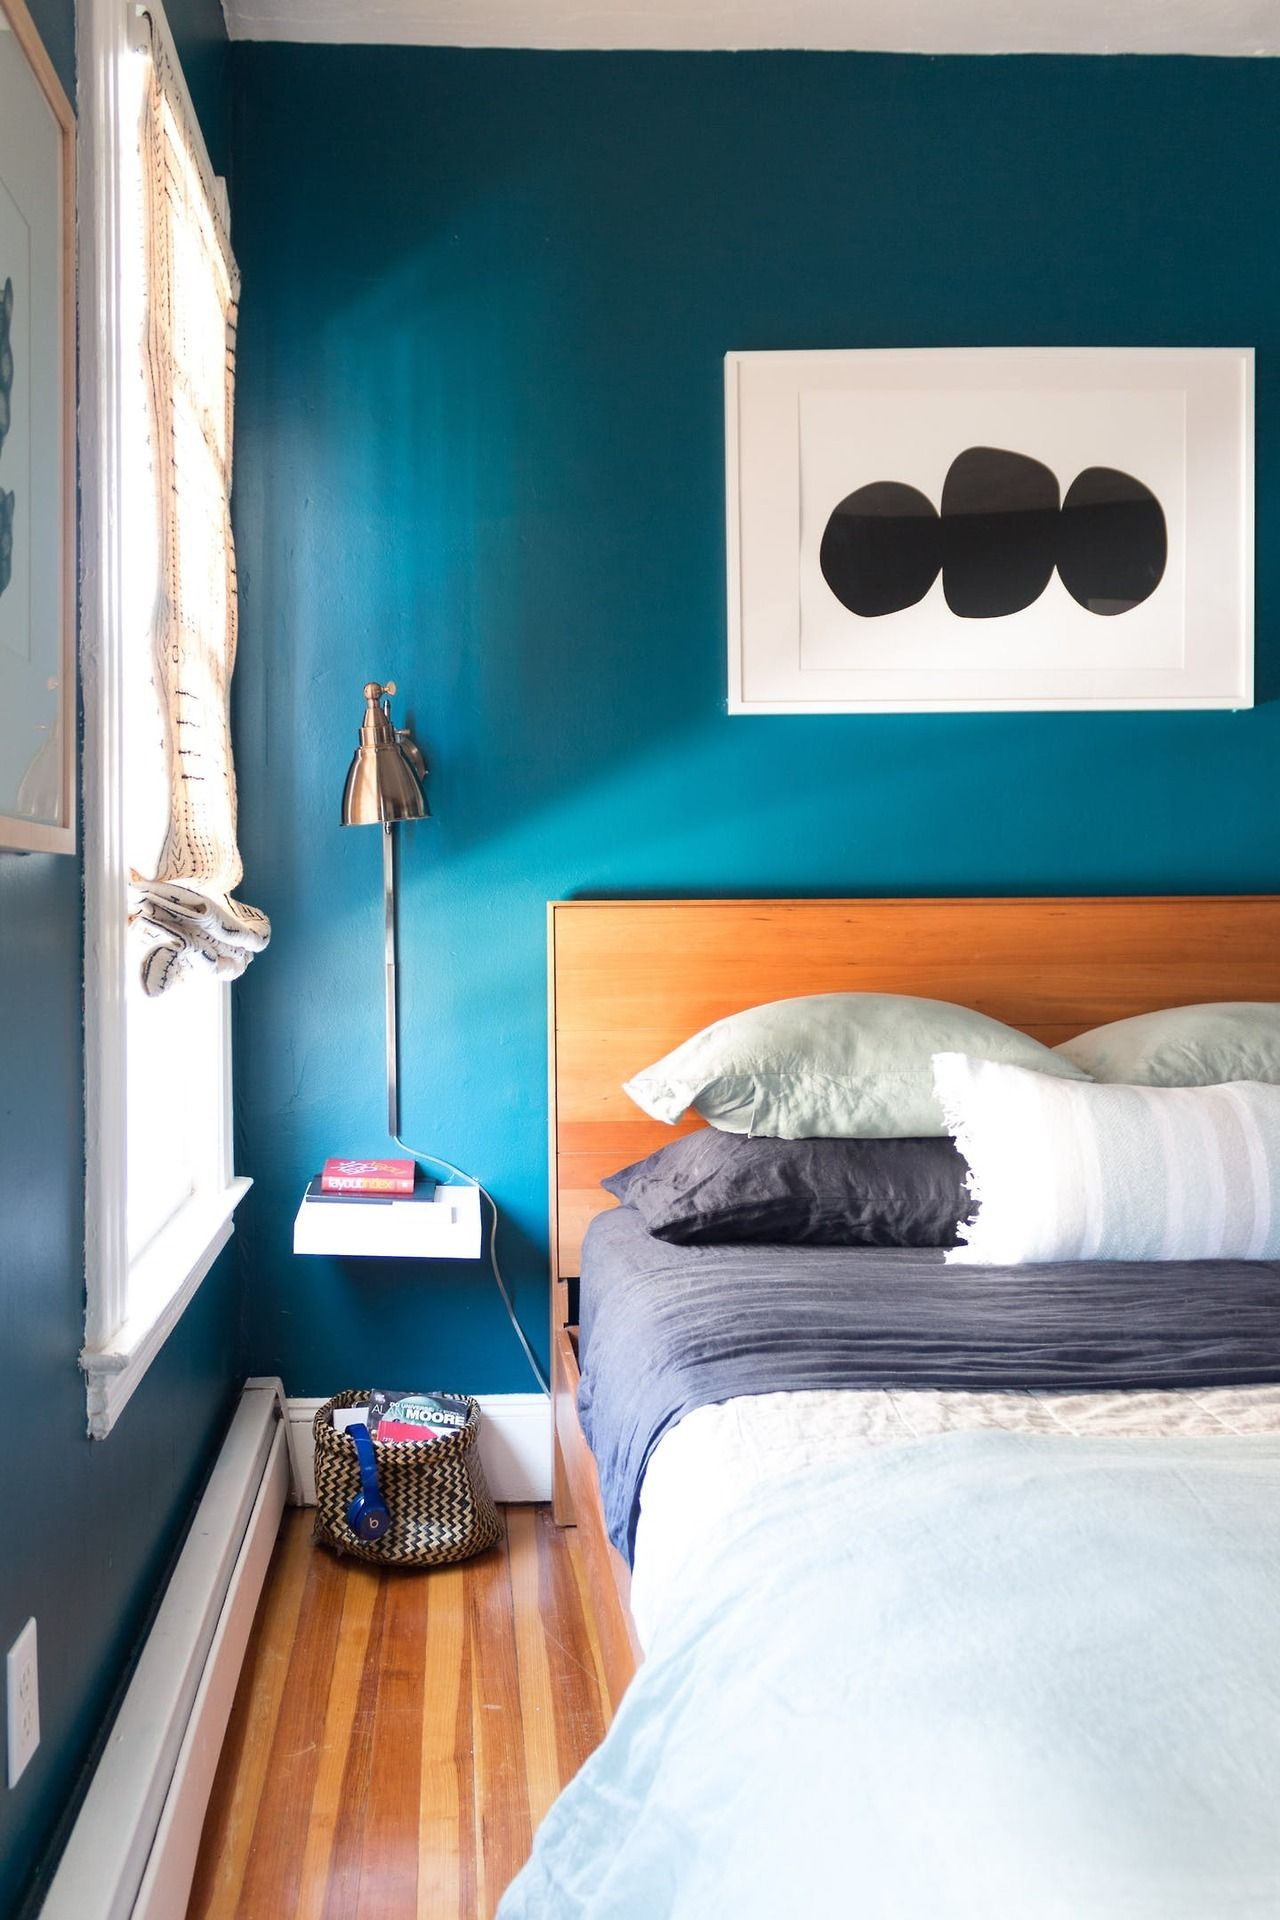 Gravity Home is a daily interior design blog Work with me astrid